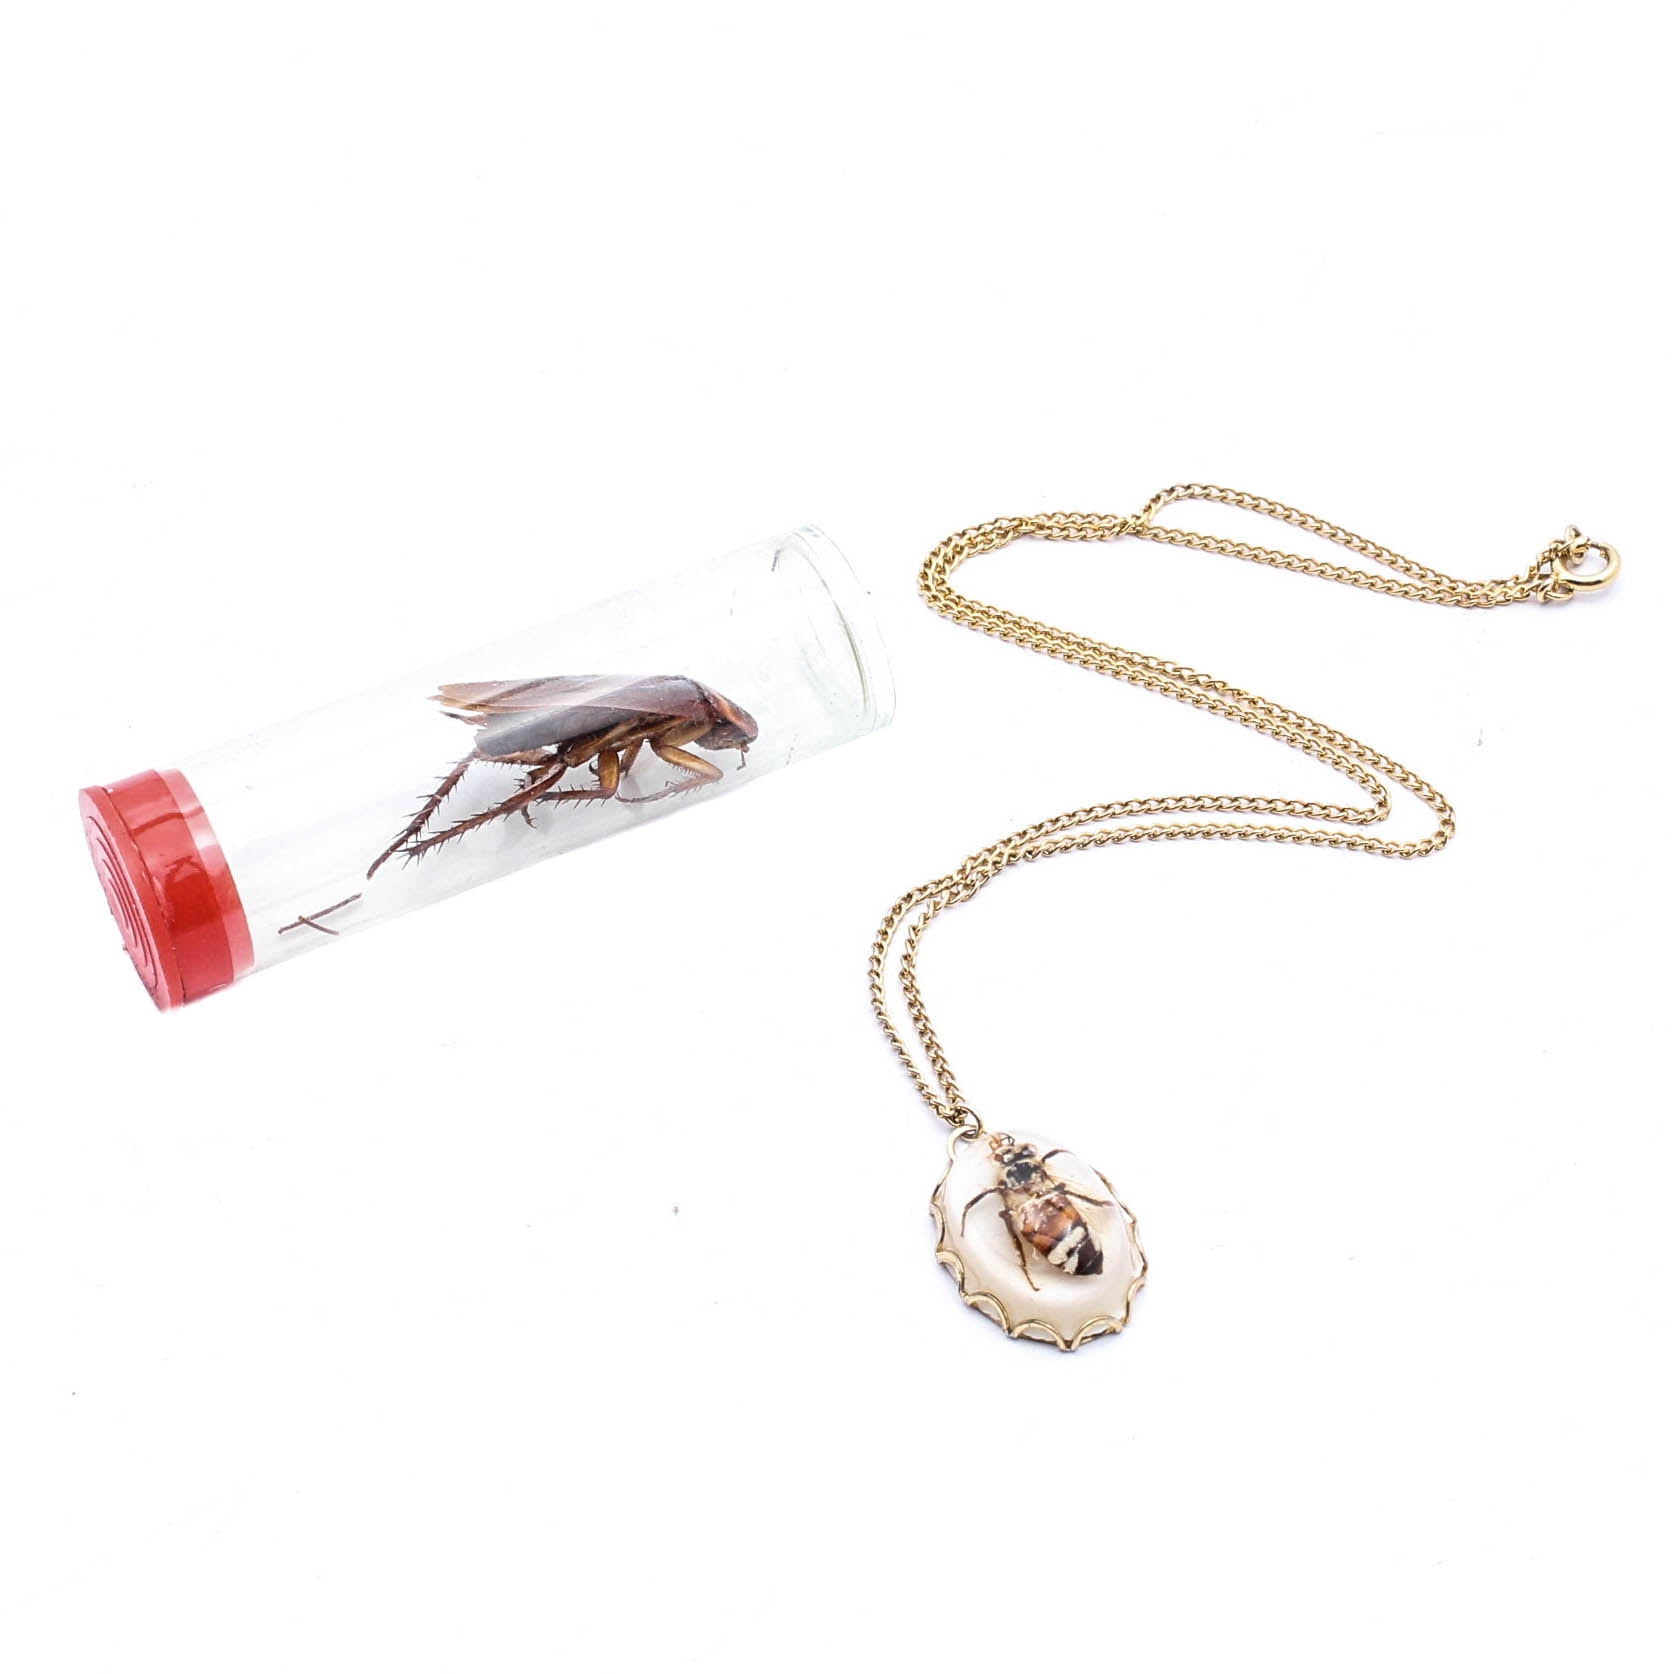 Bee in Resin Pendant Necklace and Large Cockroach Specimen